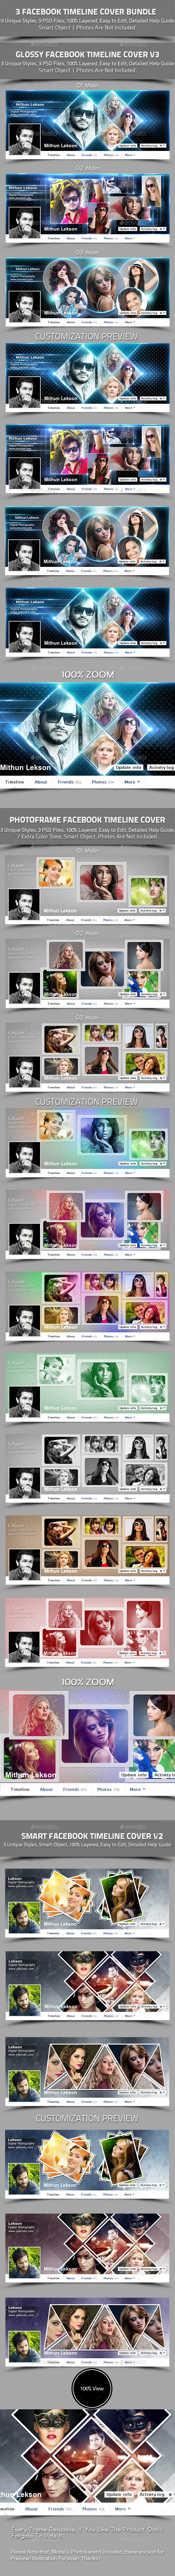 3 Facebook Timeline Cover Bundle - Facebook Timeline Covers Social Media